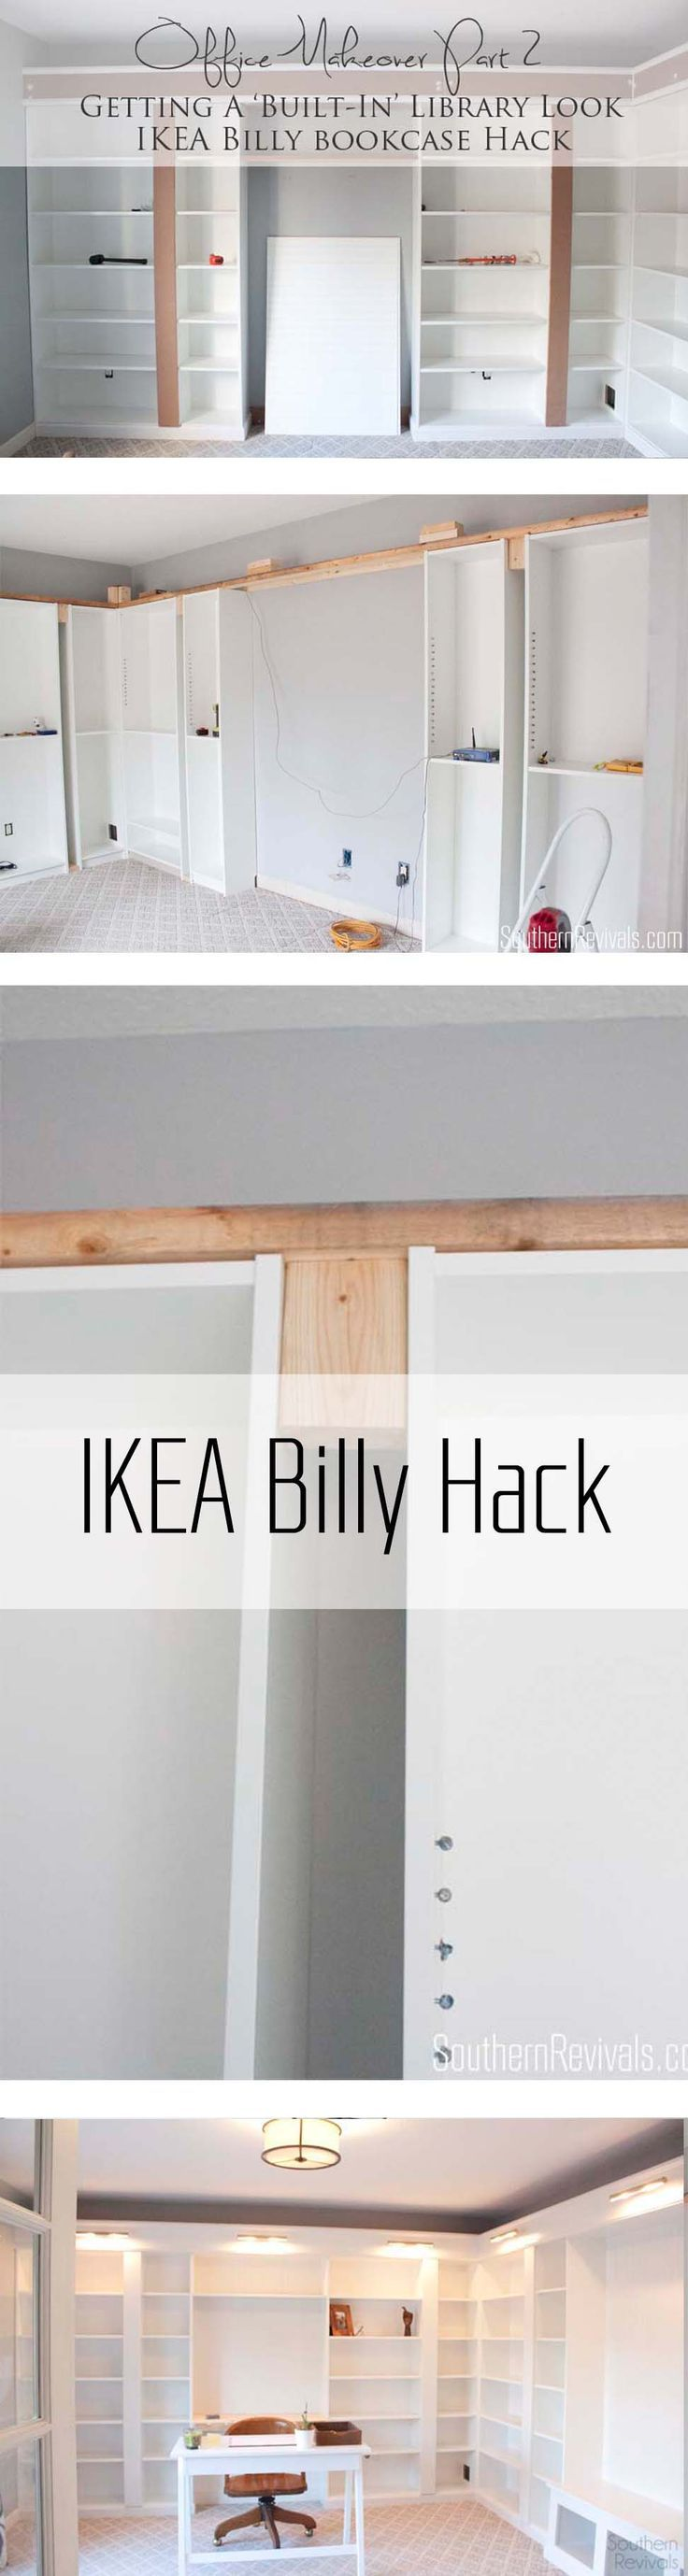 IKEA Hack with built-in Billy bookcases - how we got an expensive built-in library home office look on a budget.